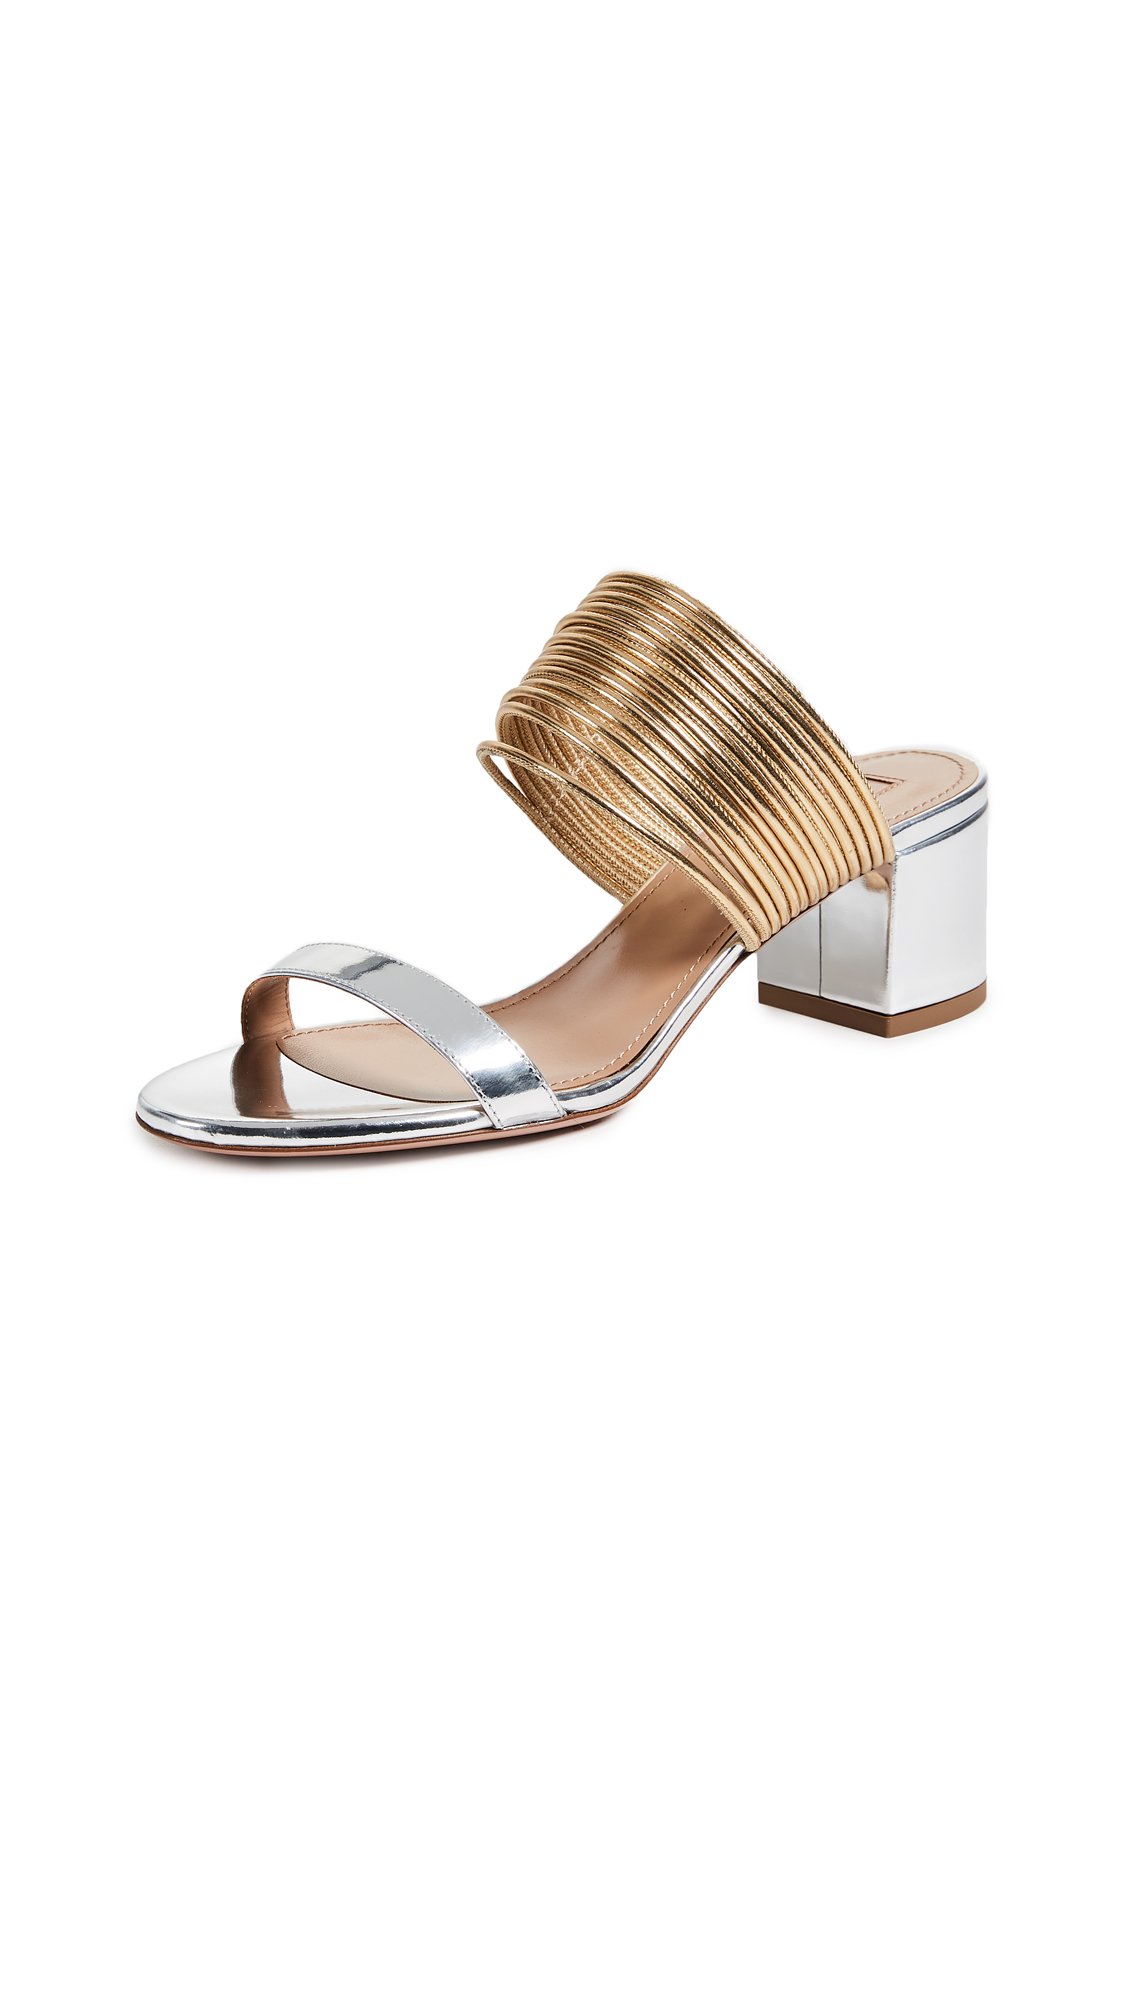 Aquazzura Rendez Vous Sandals - Silver/Gold